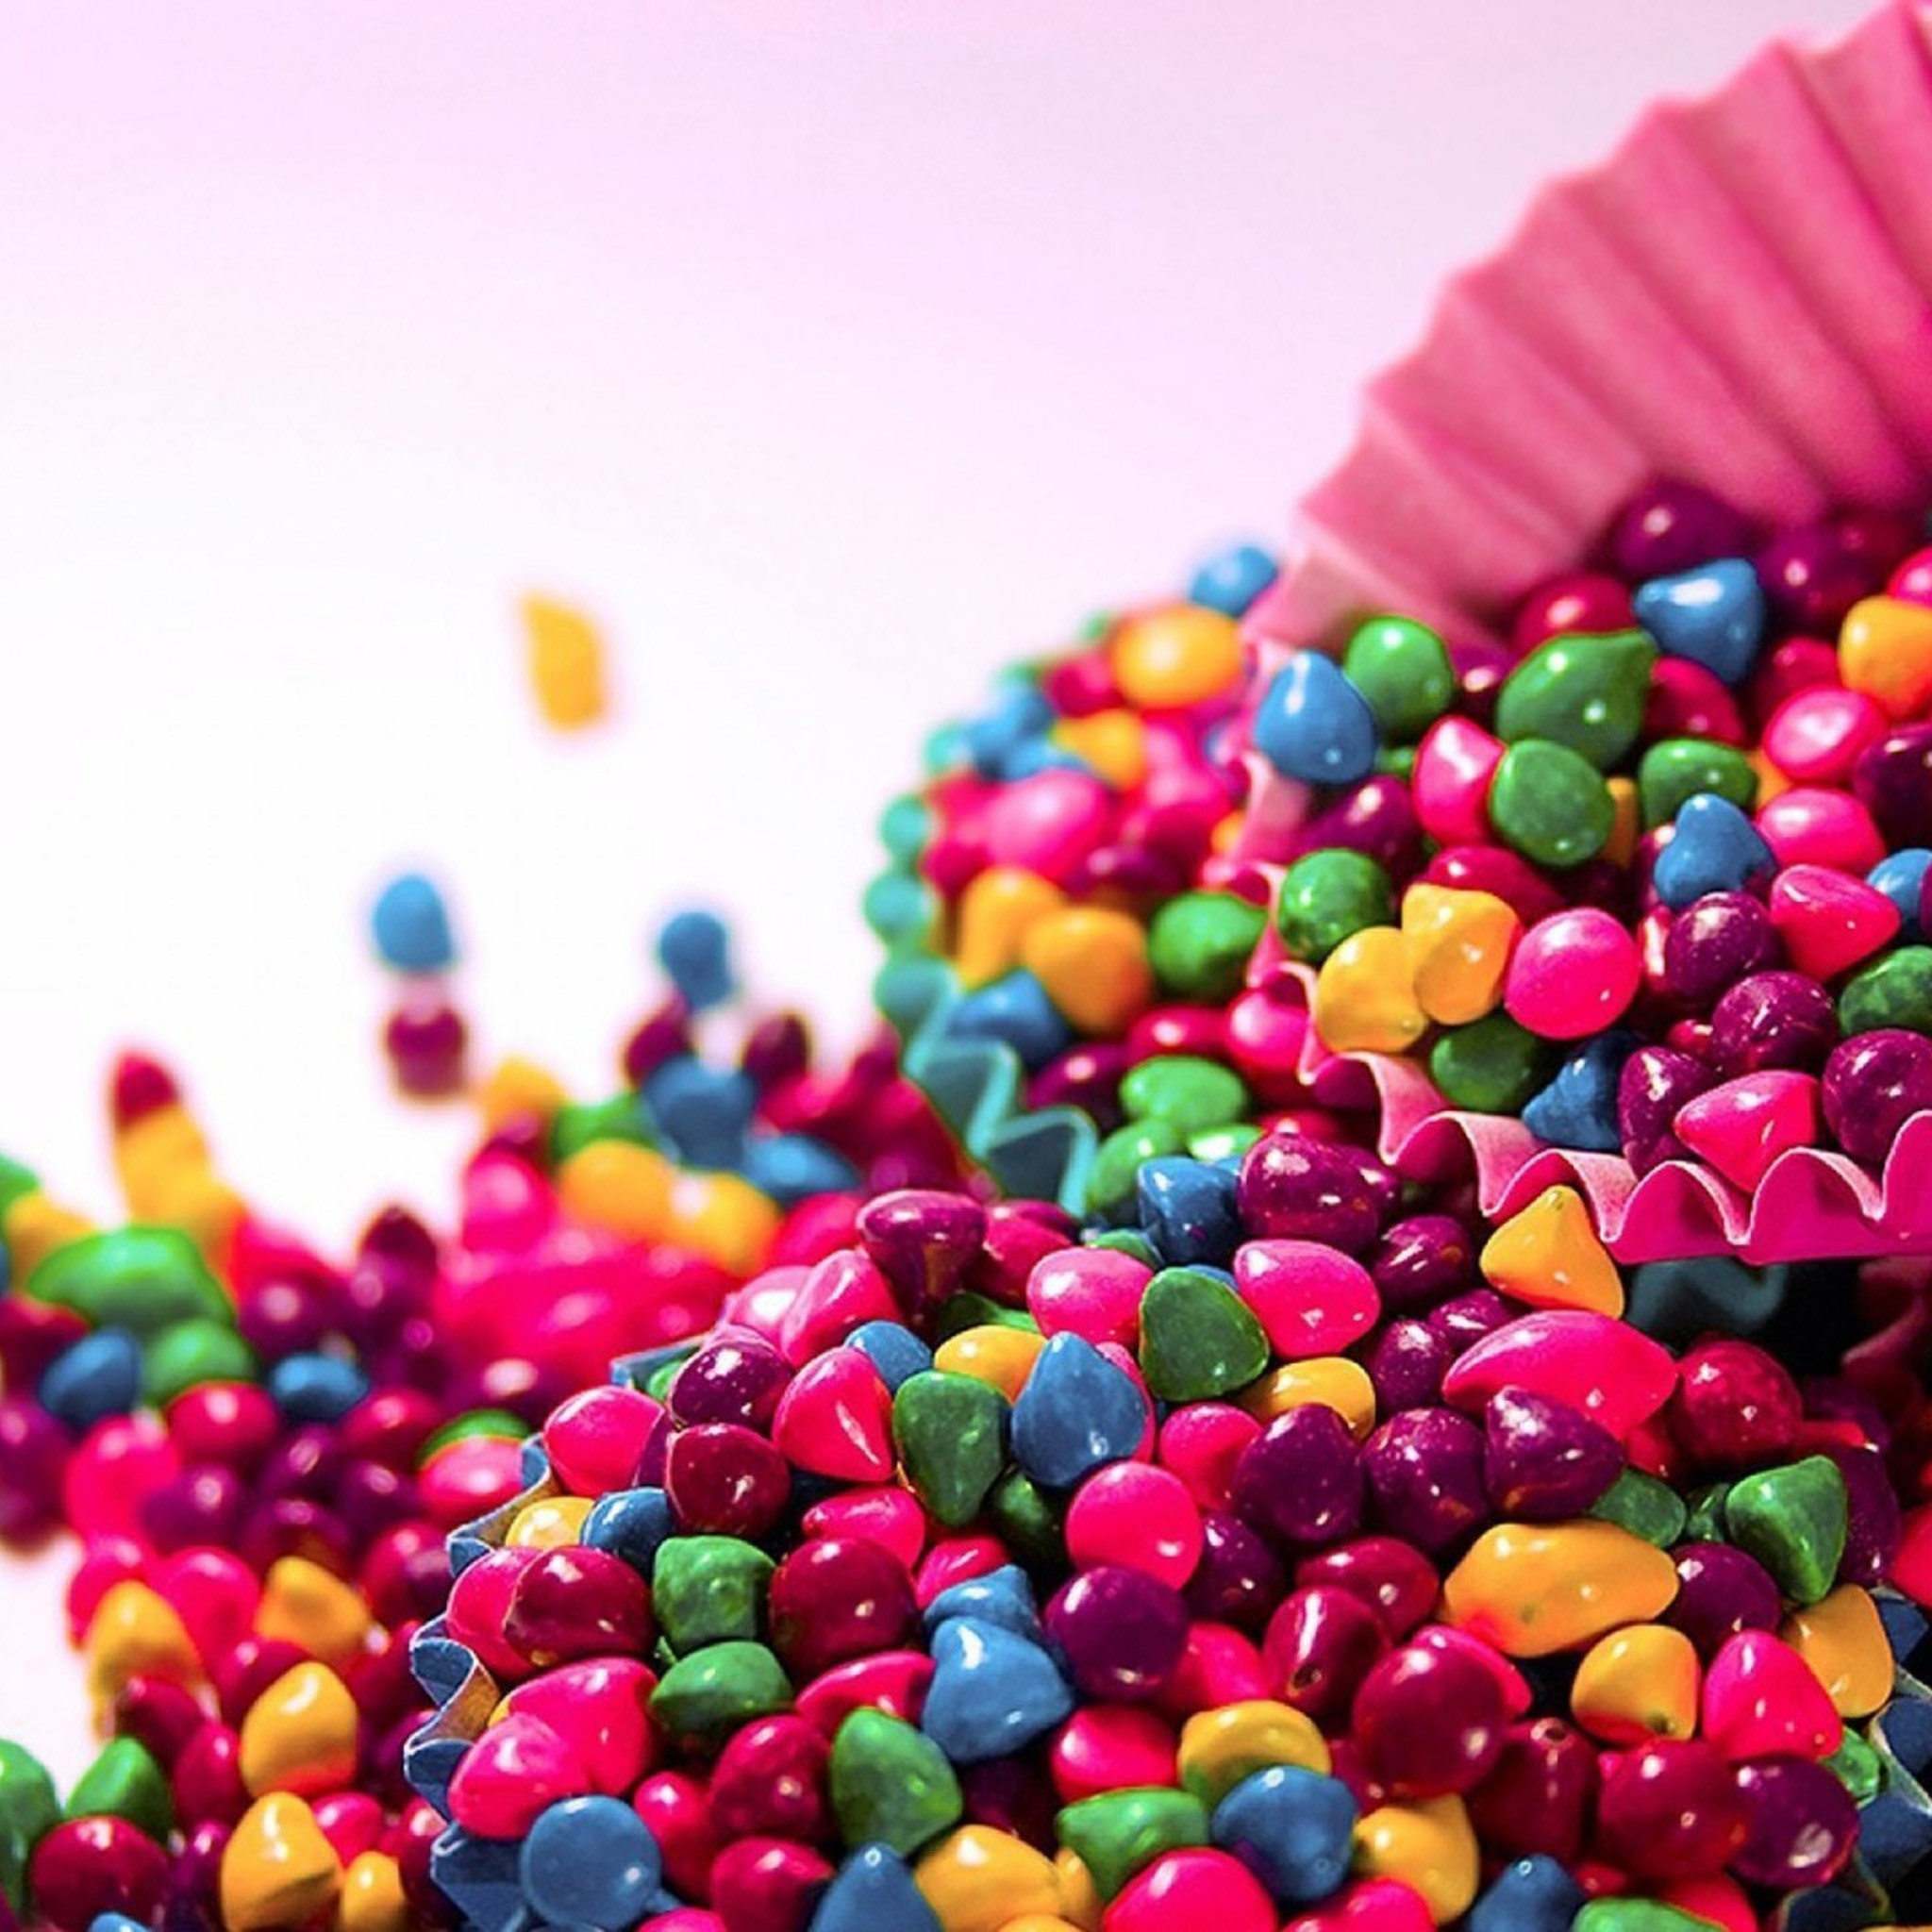 Res: 2048x2048, Keys: skittles, wallpaper, wallpapers, food and drink